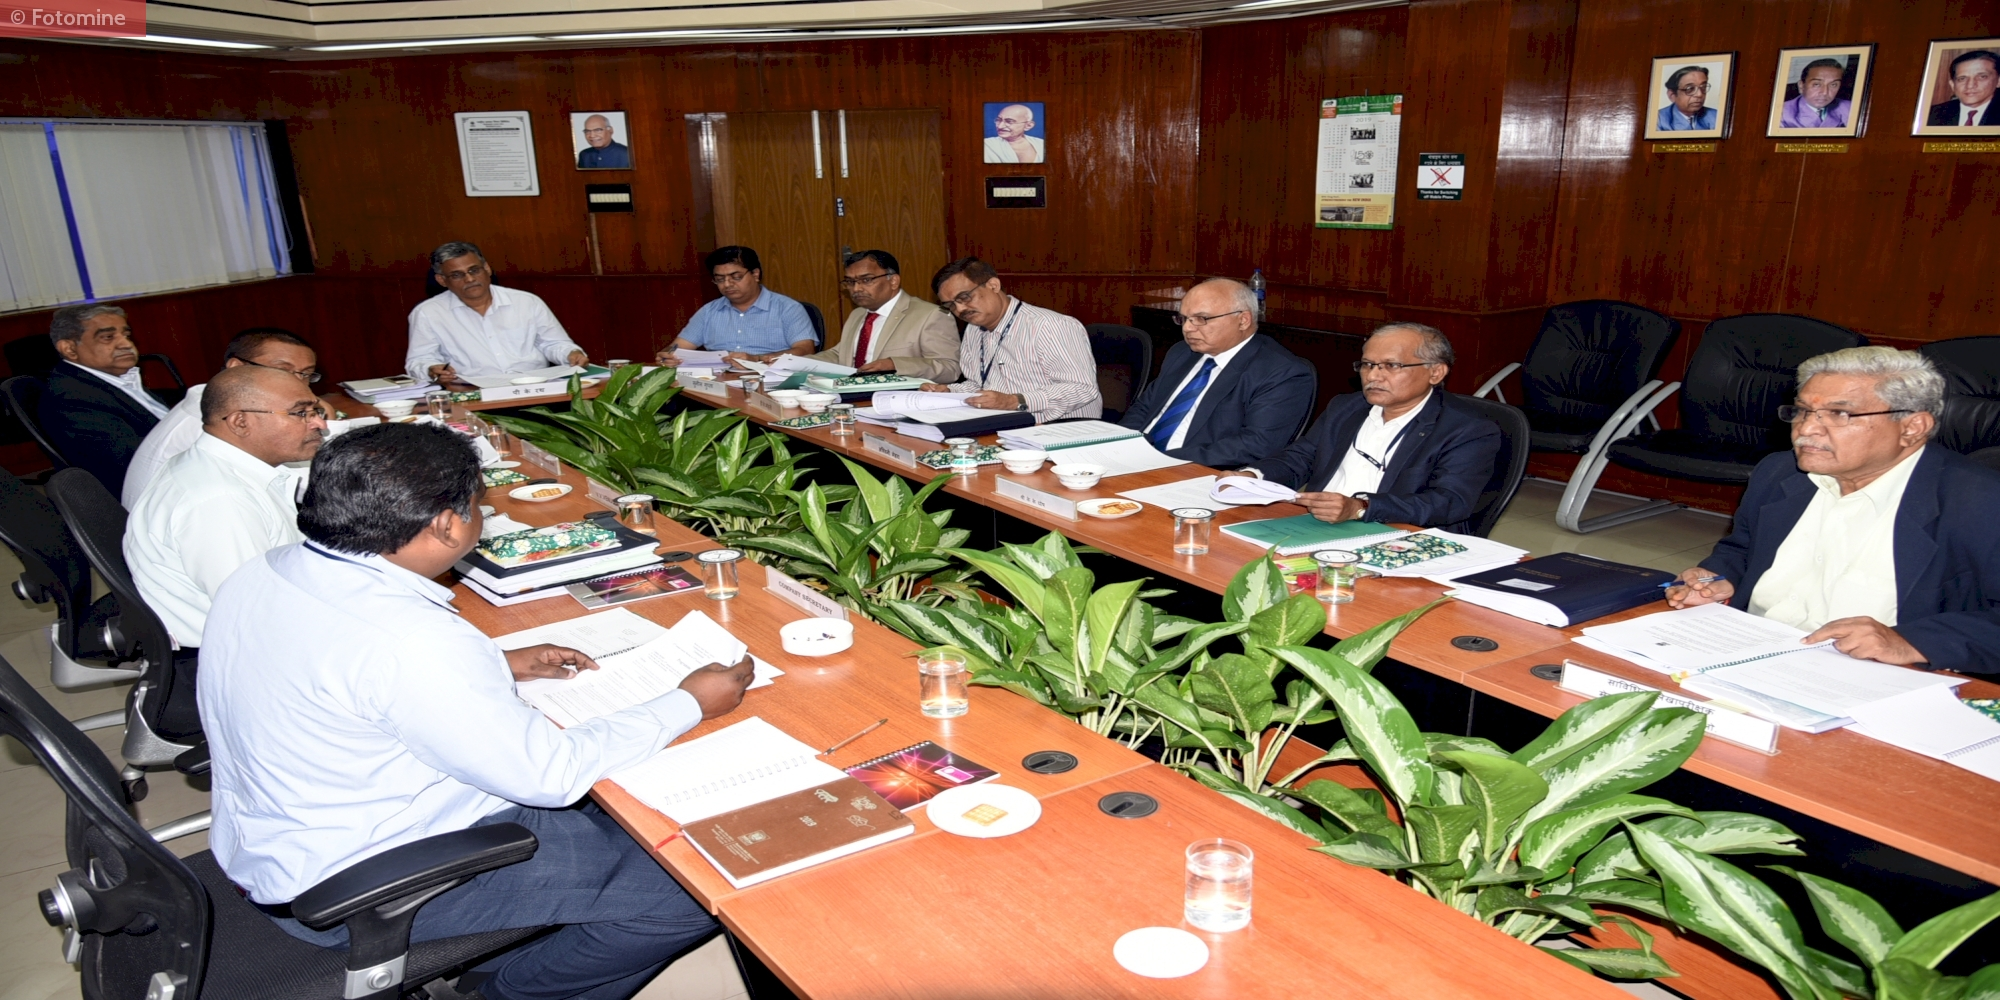 RINL Conducts its 37th Annual General Meeting in Vizag